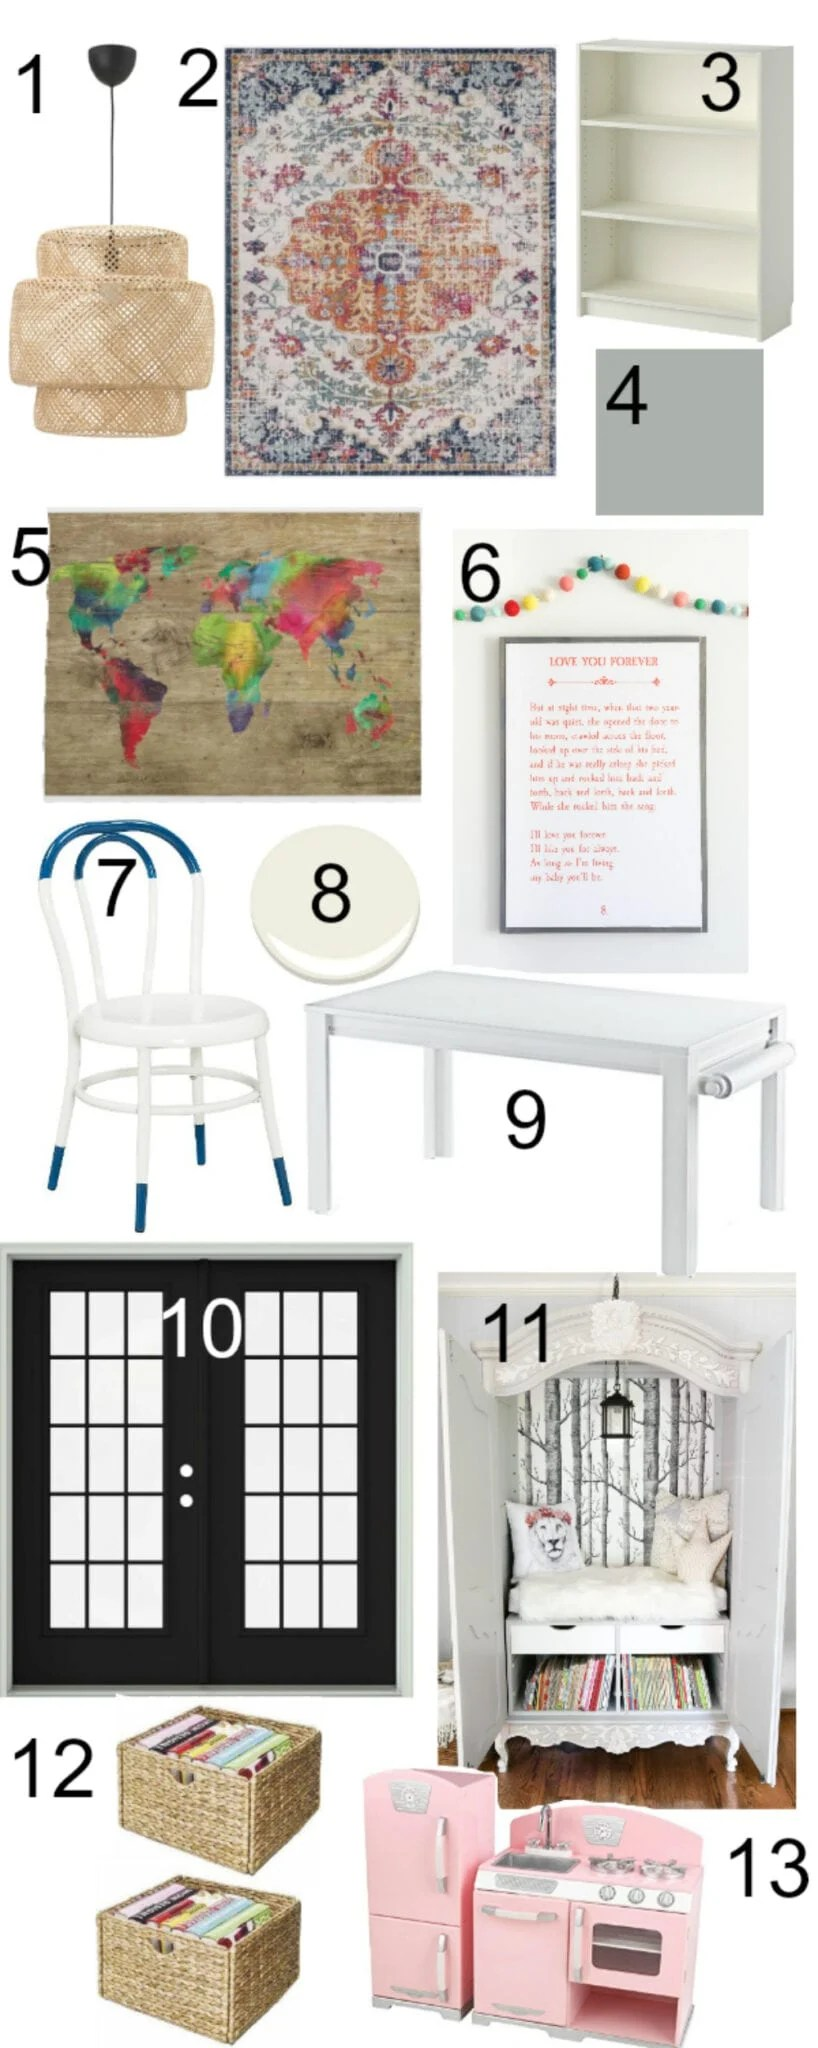 Sweet and Simple Playroom Mood Board | blesserhouse.com - A dated and disorganized playroom gets a fresh, modern, sweet design plan with storage solutions, bright colorful accents, and room to create. #playroom #designboard #moodboard #kidsroom